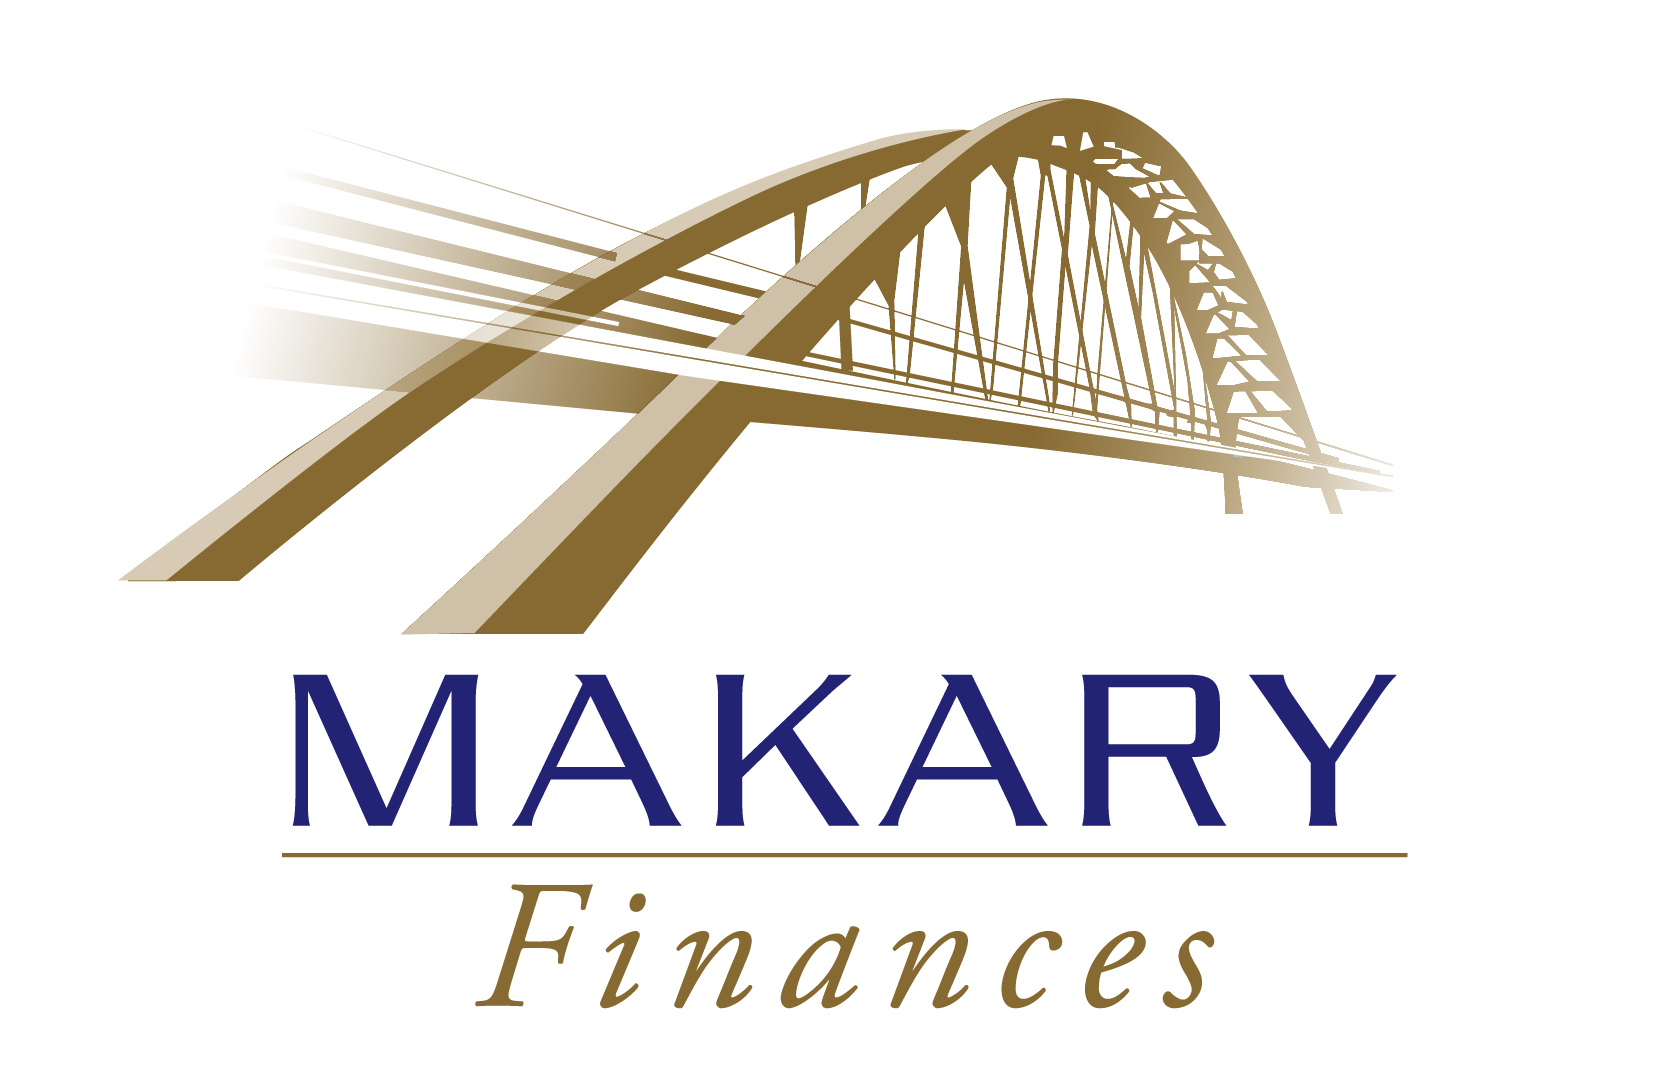 MAKARY FINANCES